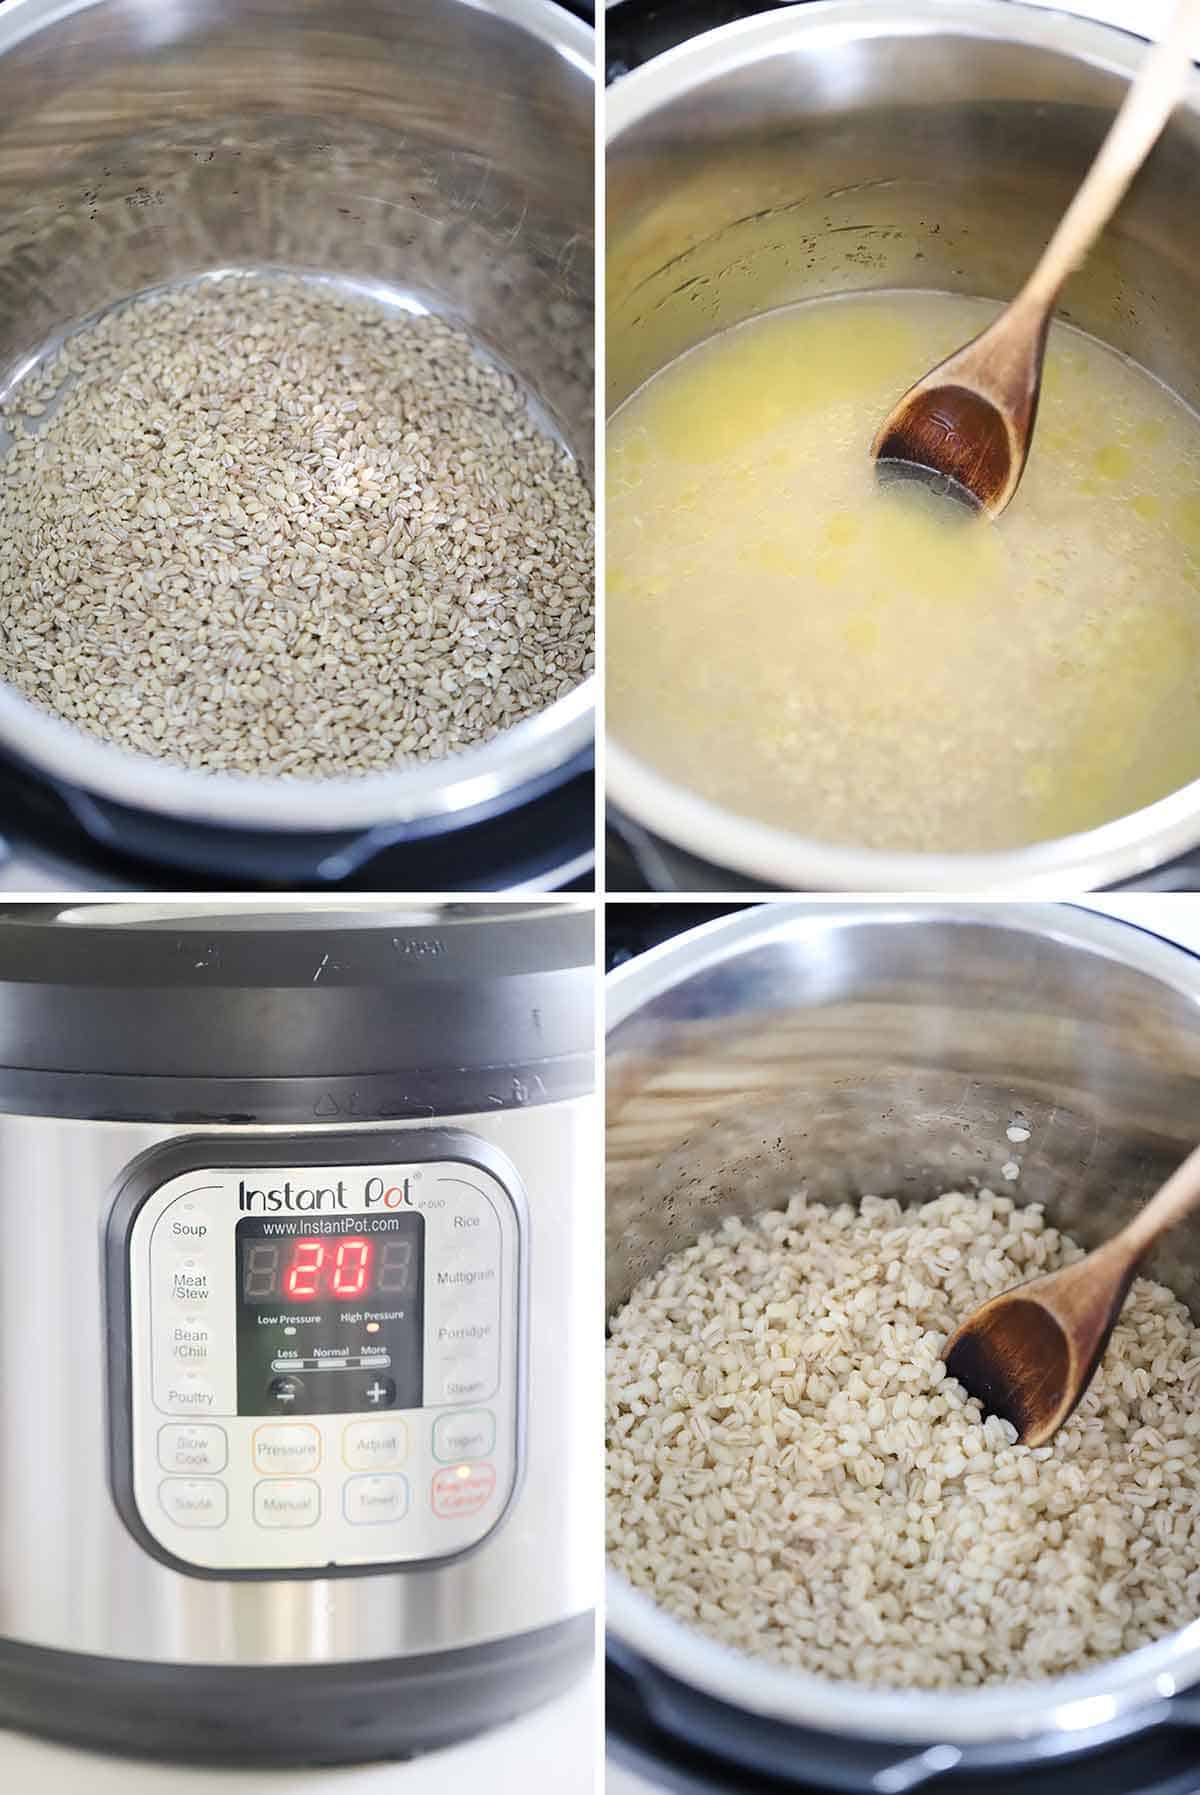 Process collage showing how to cook barley in an instant pot.